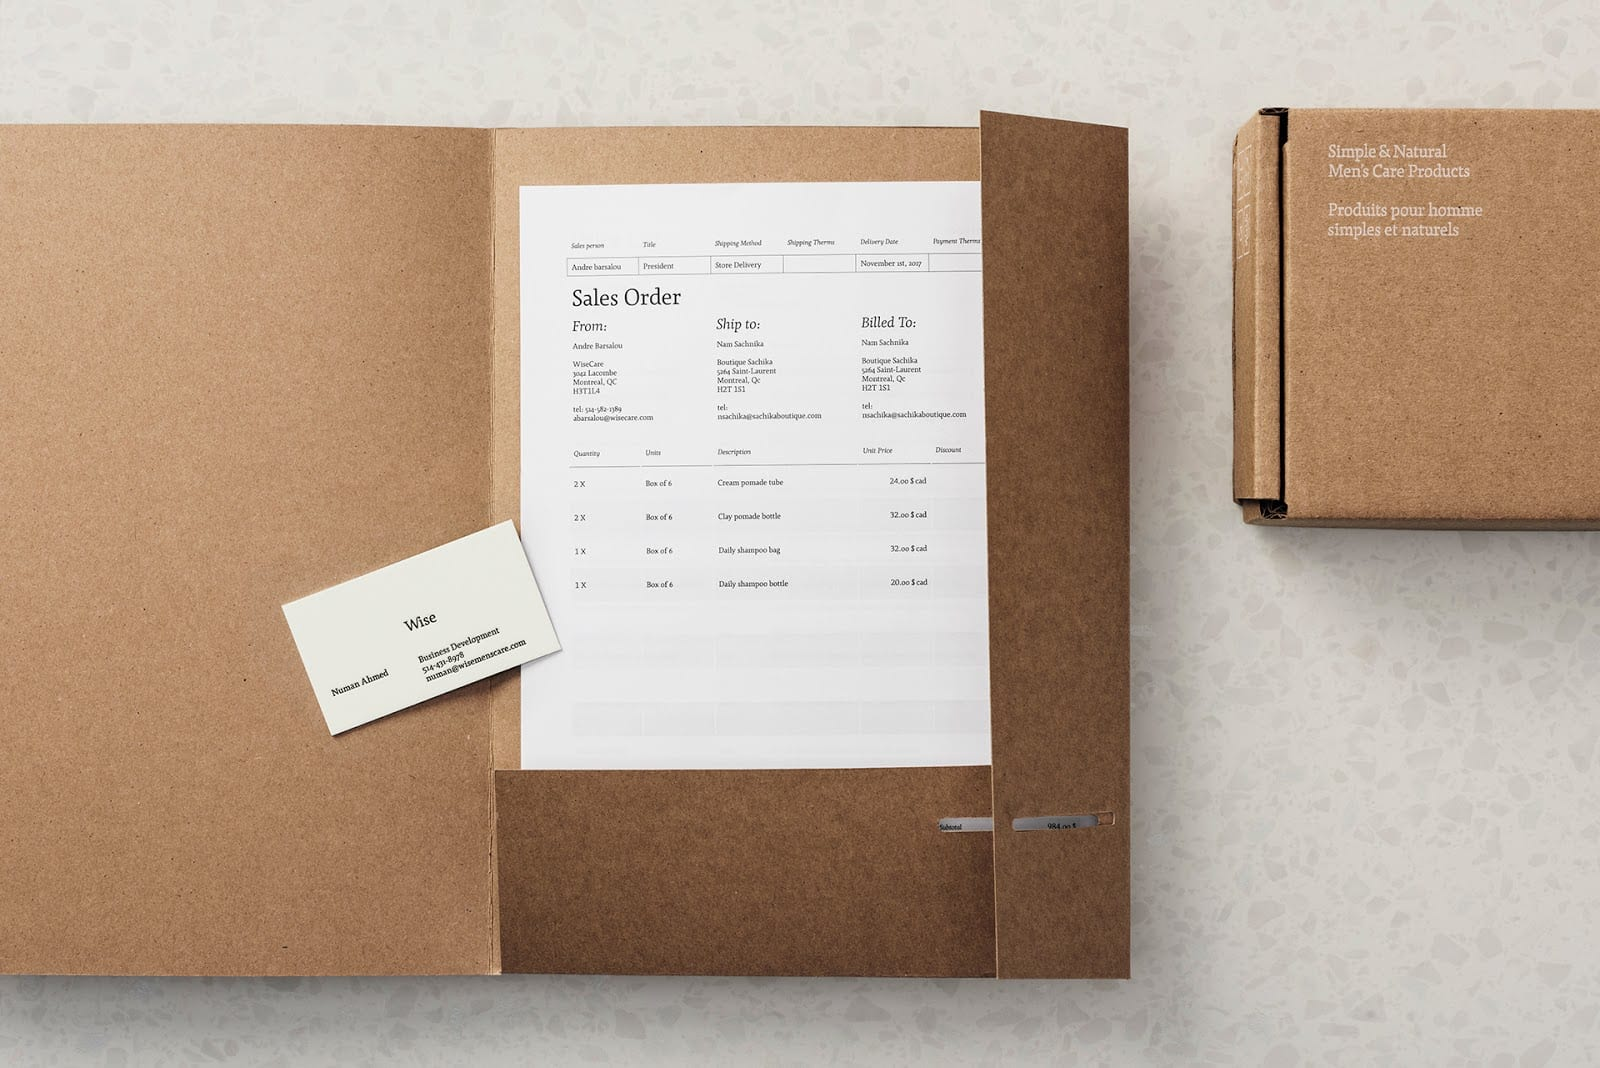 Wise Mens Care Brand Identity and Packaging 012 - Ach, tie obaly – péče Wise Men